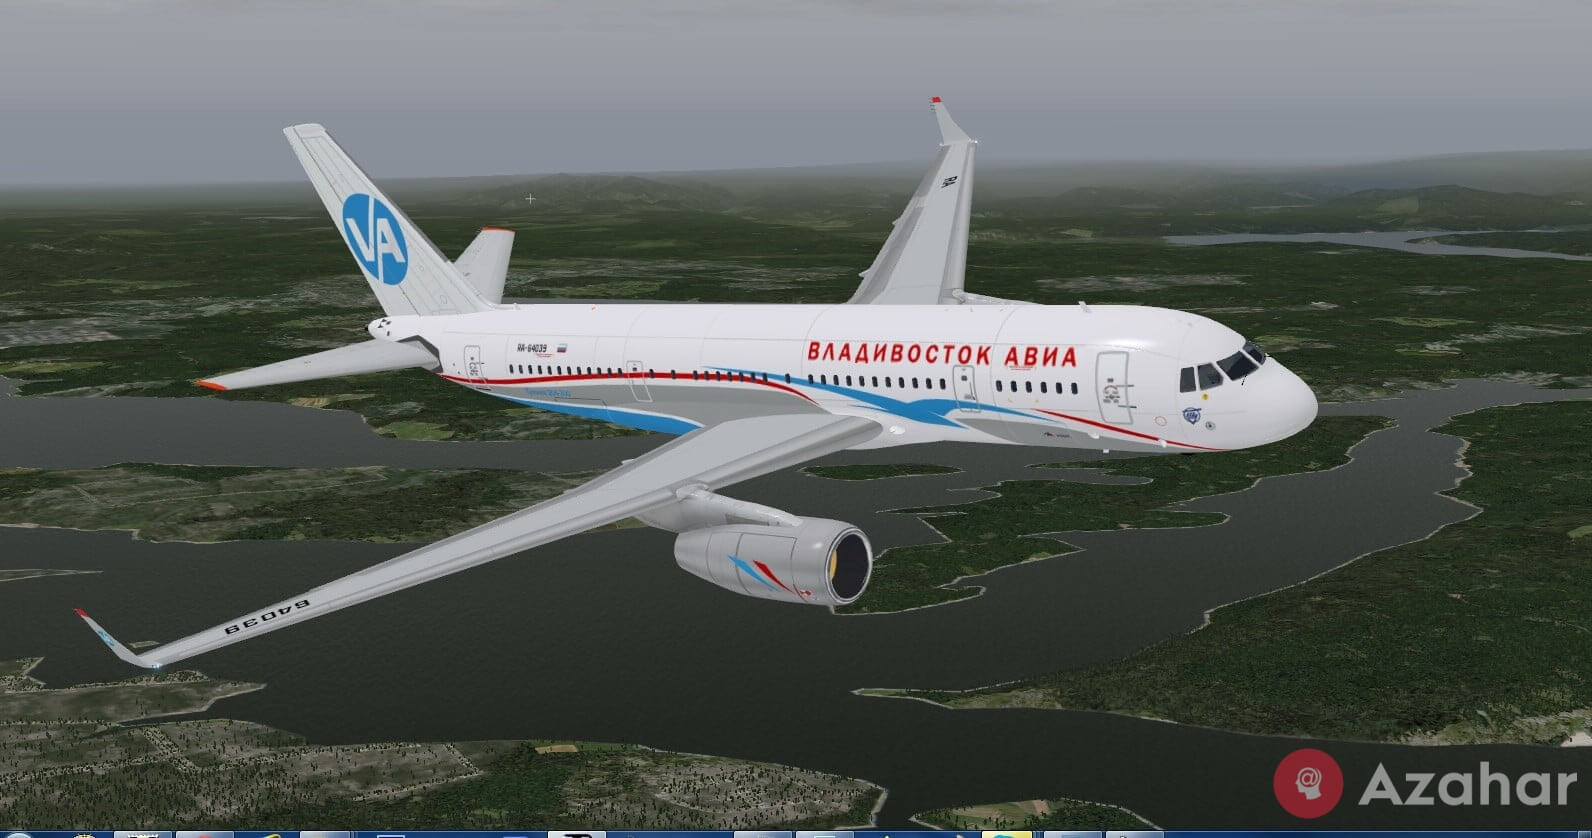 Winglets Reduce The Force Of The Generated Vortices